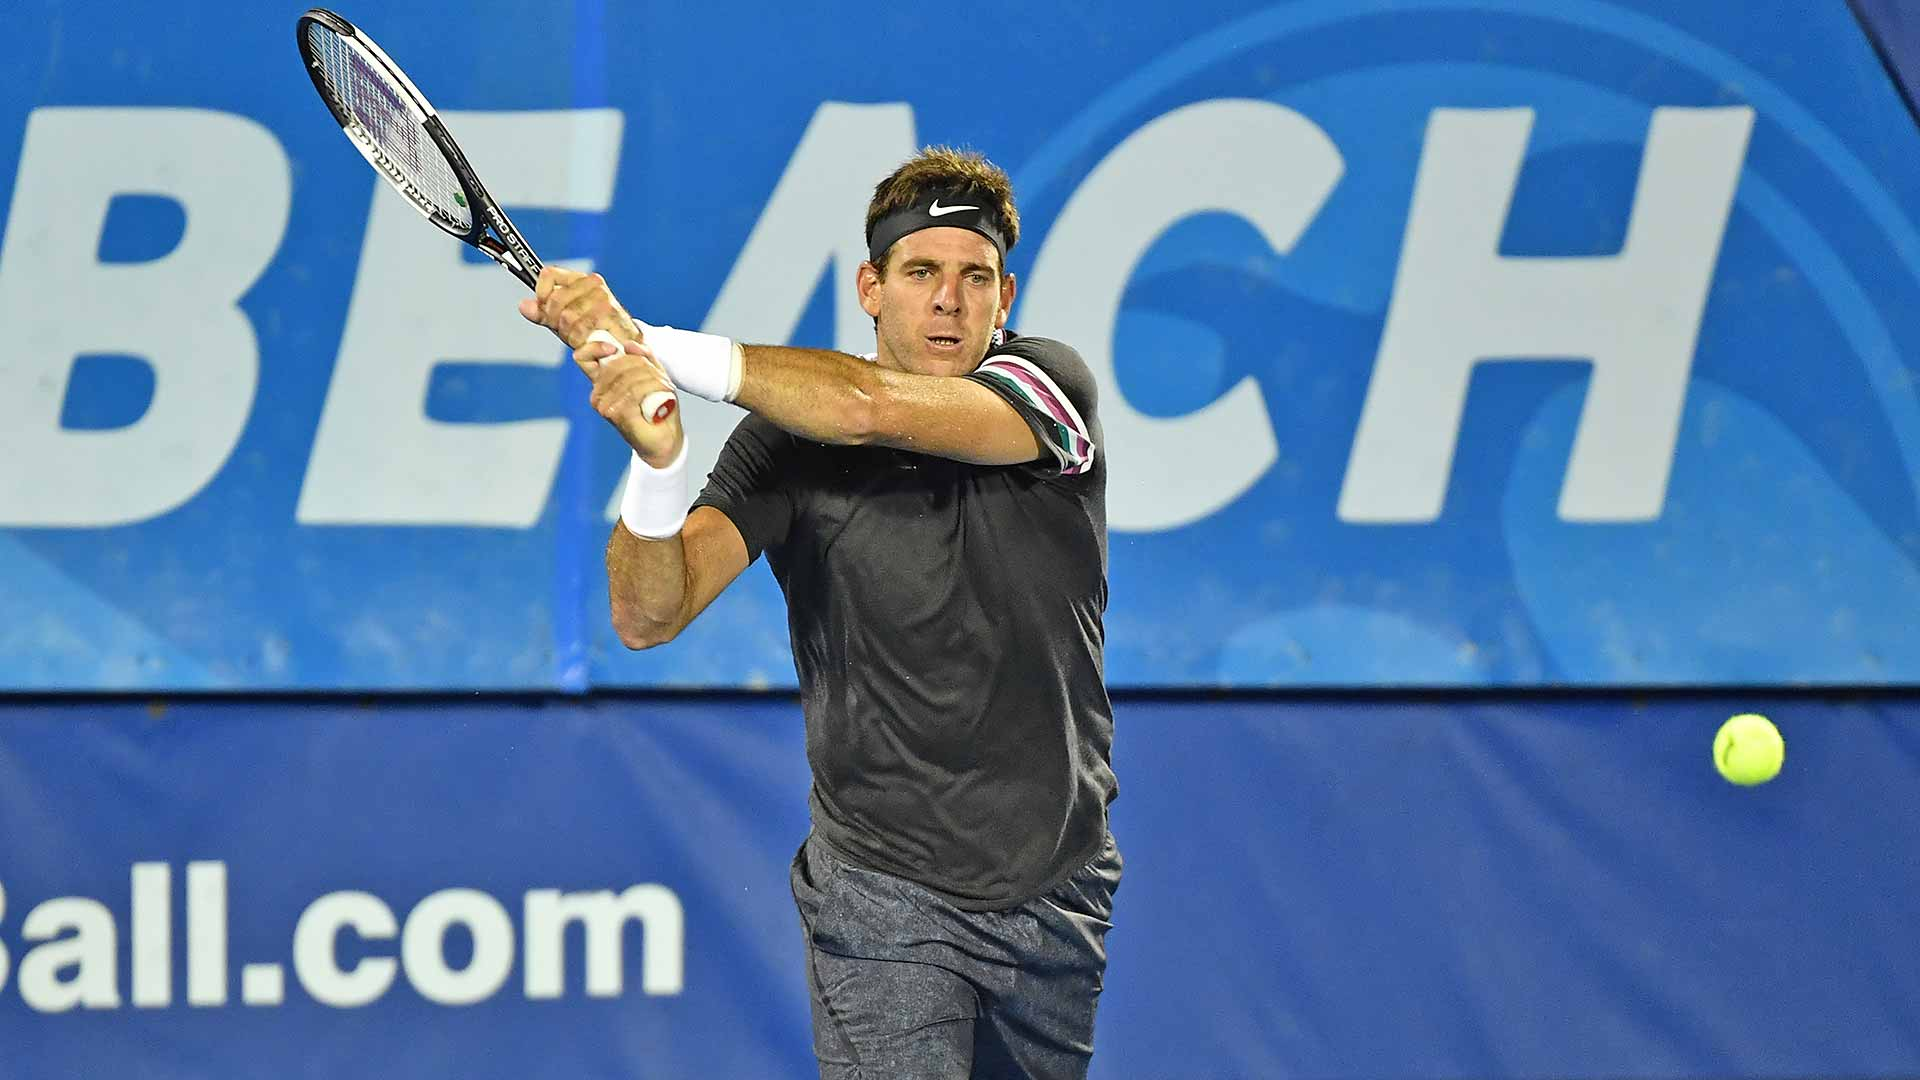 Del Potro beats Nishioka in Delray Beach